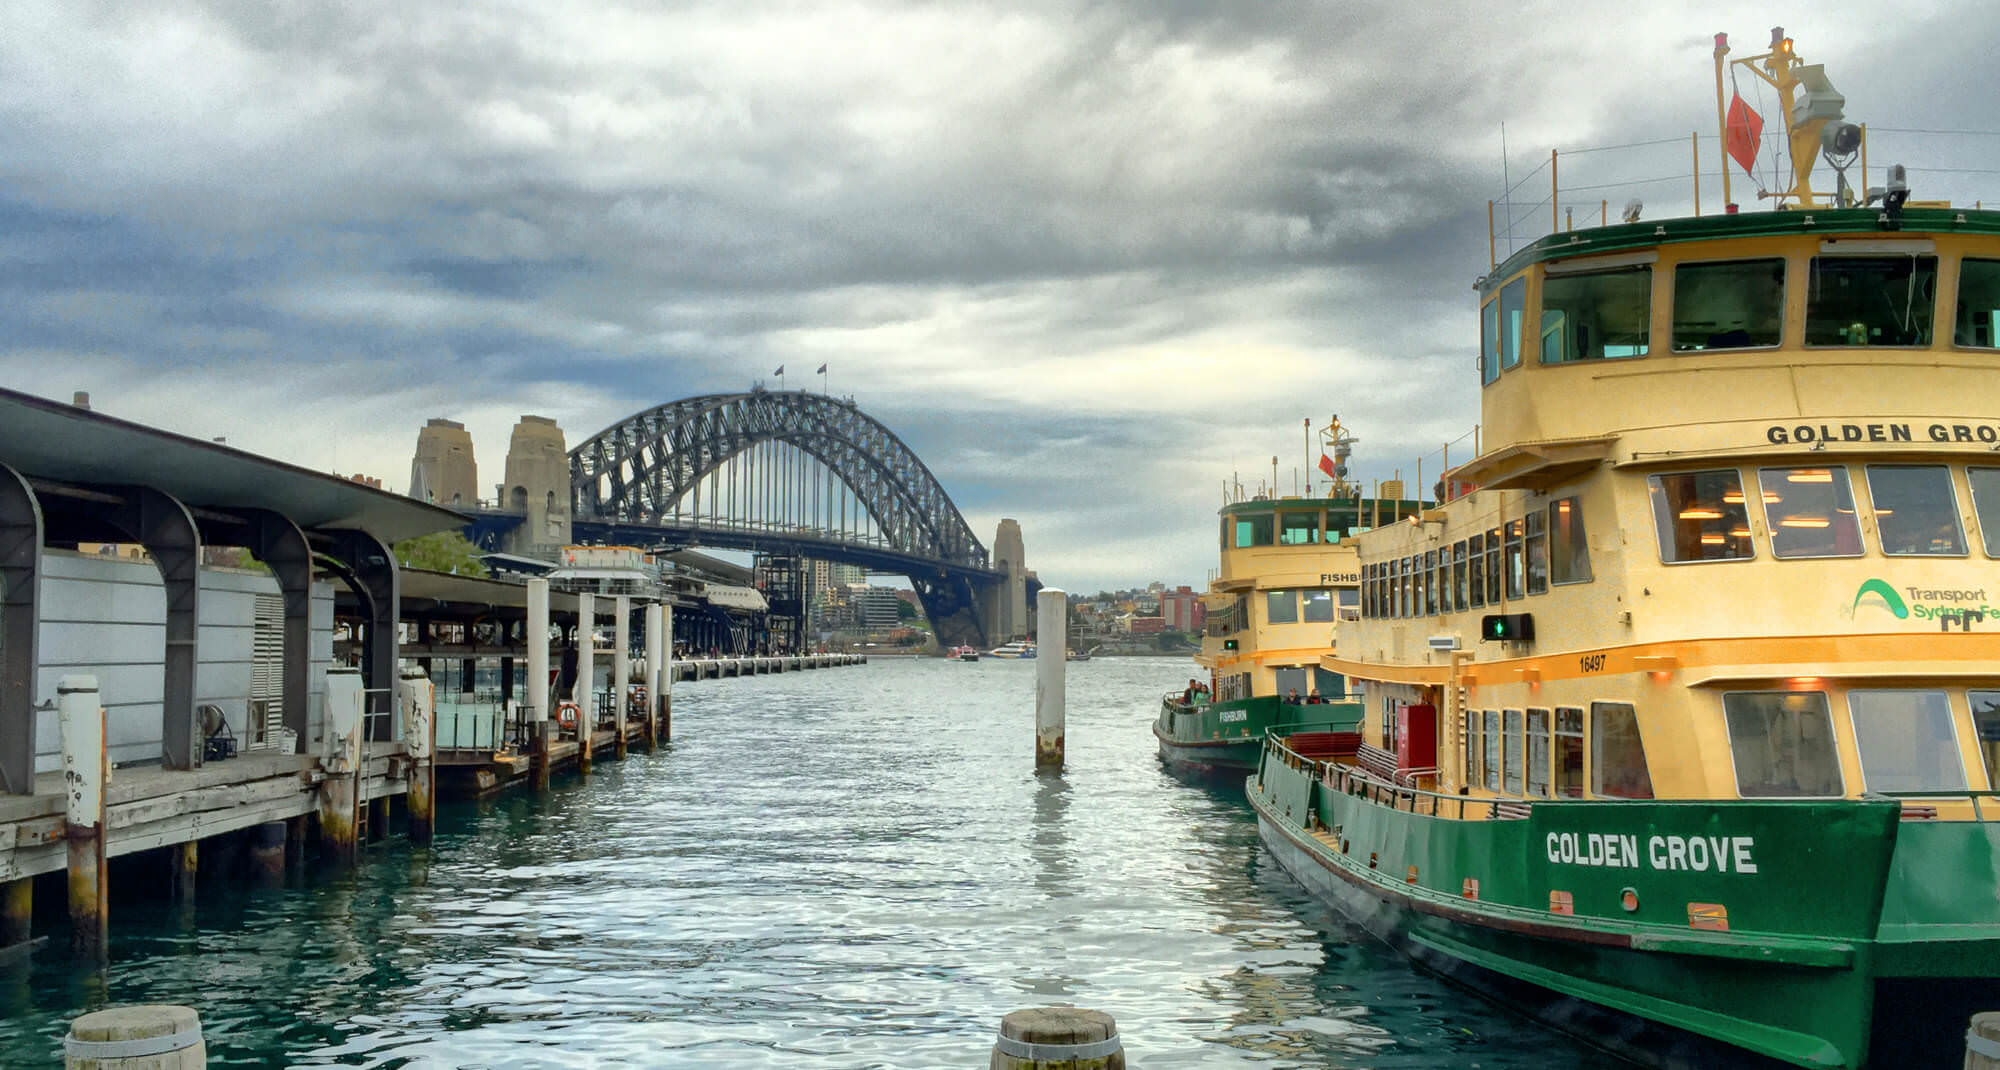 Top 10 things to do in Sydney, recommended by locals